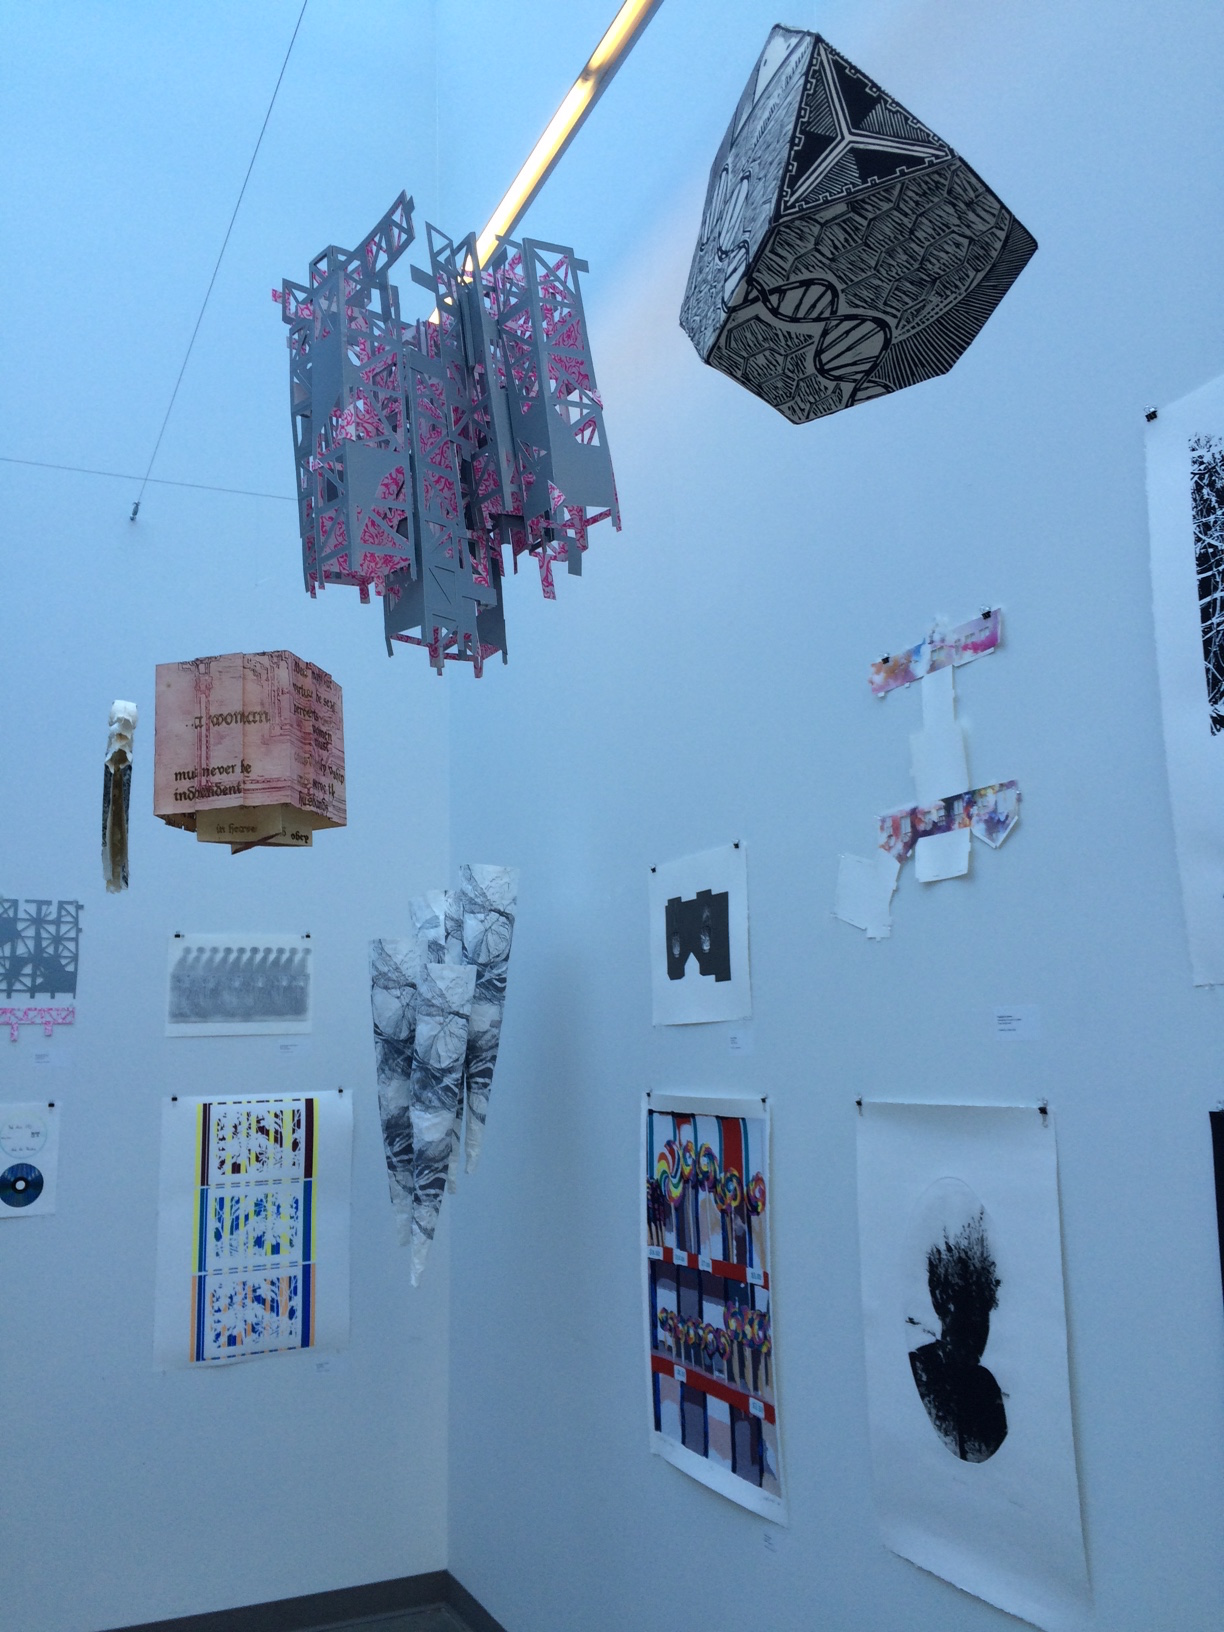 Dimensional print exhibition at PNCA